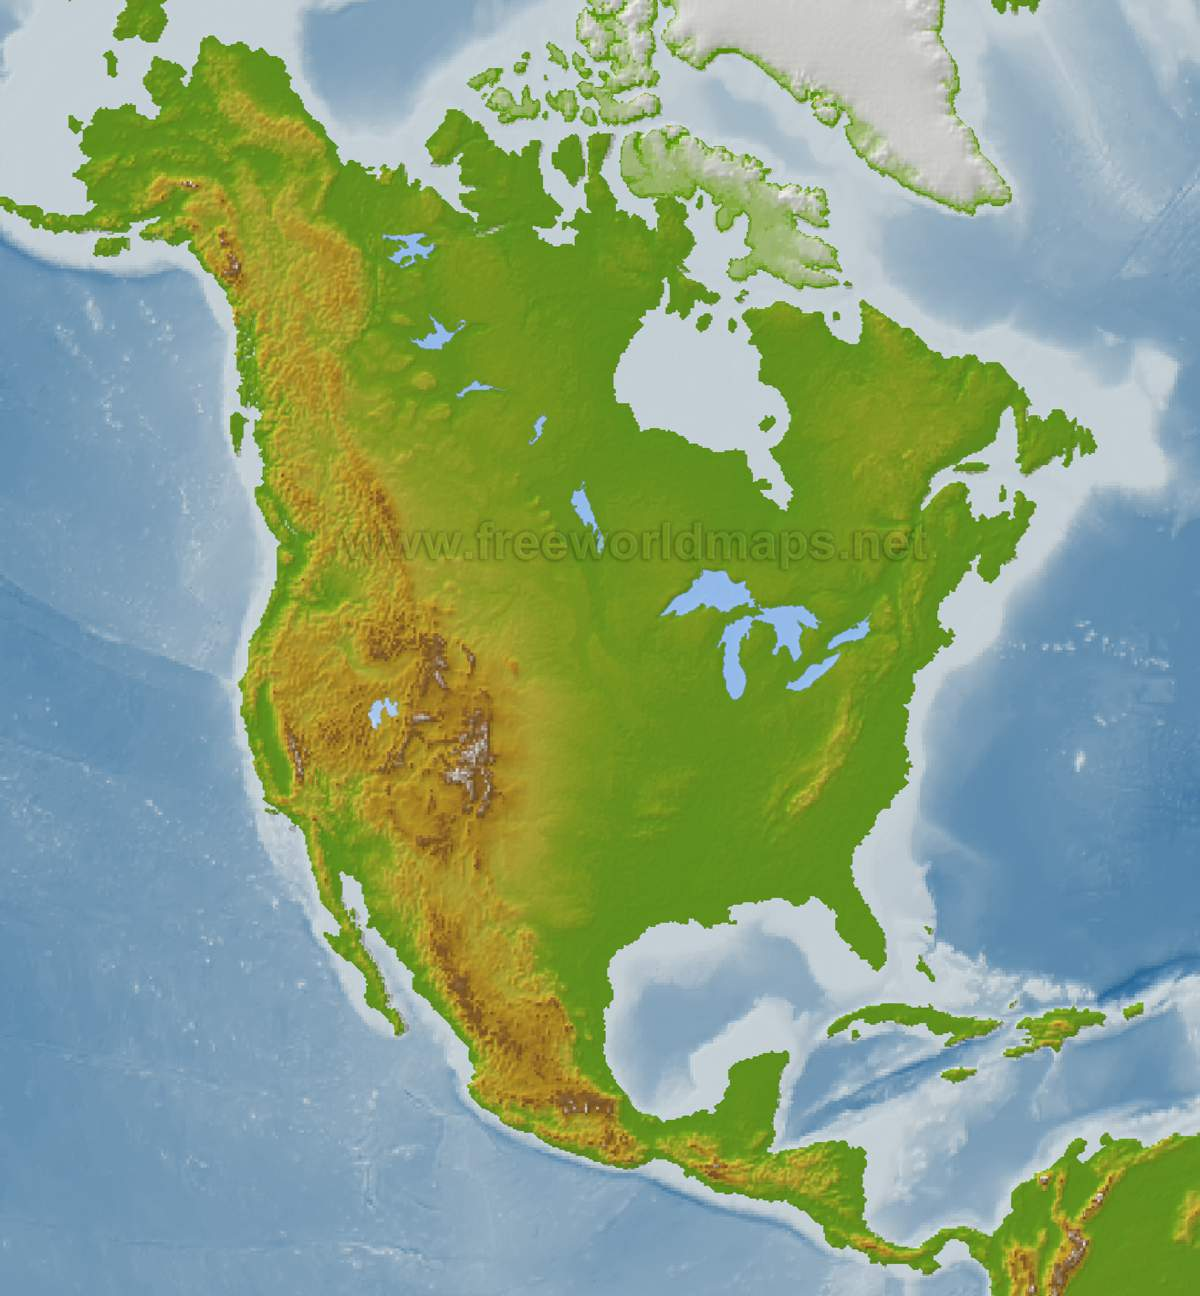 Map Of North America A Source For All Kinds Of Maps Of North America - Maps of north america